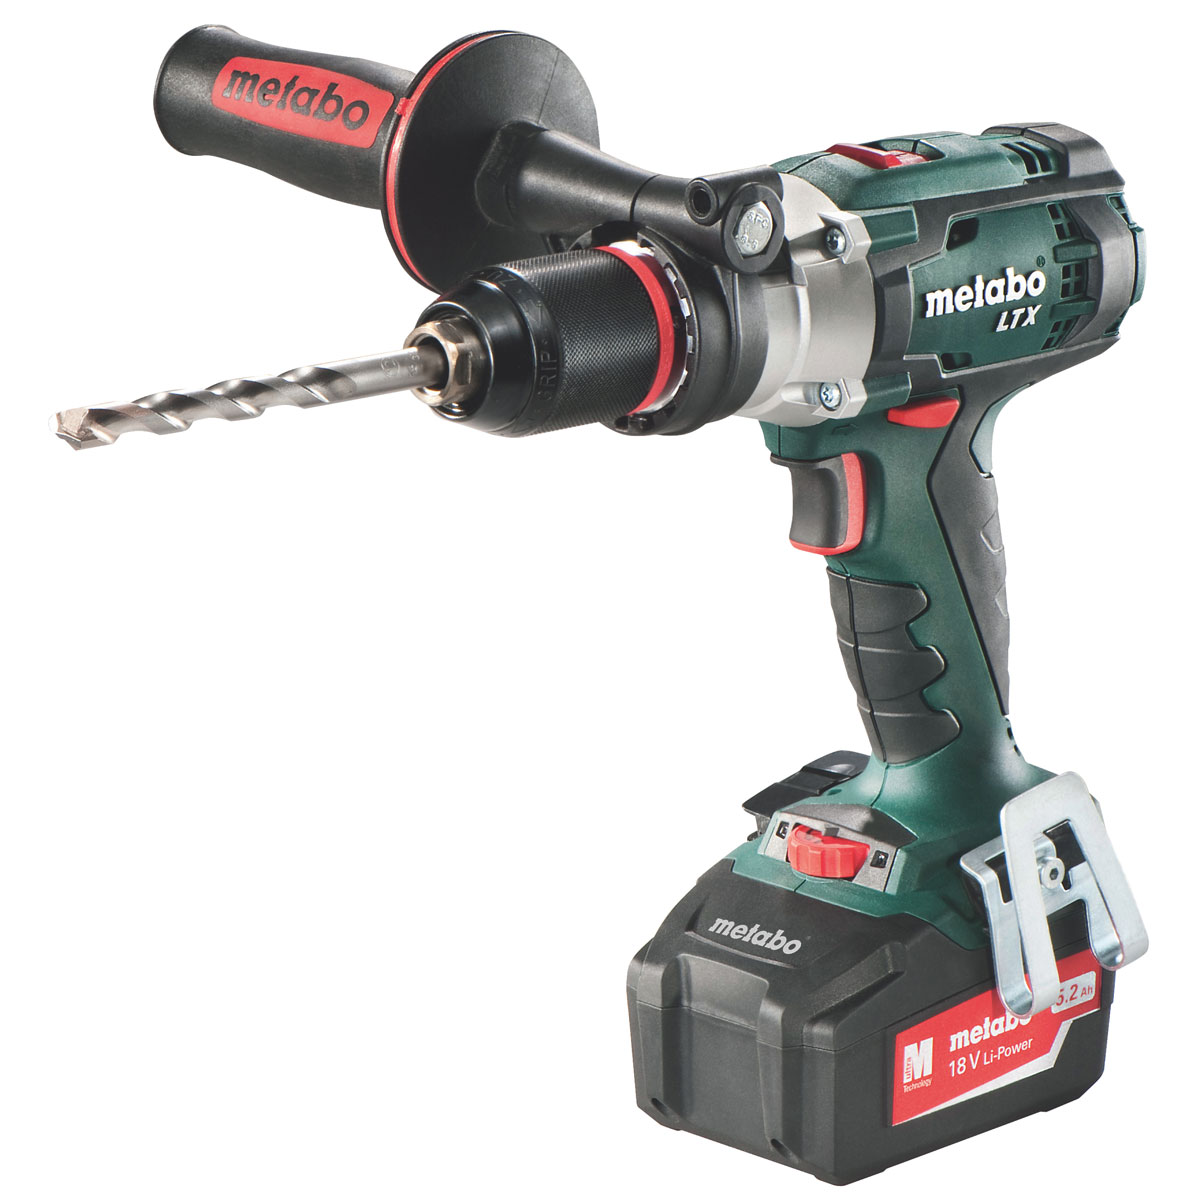 METABO 18V LTX BL COMBI DRILL KIT 2 X 5.2AH